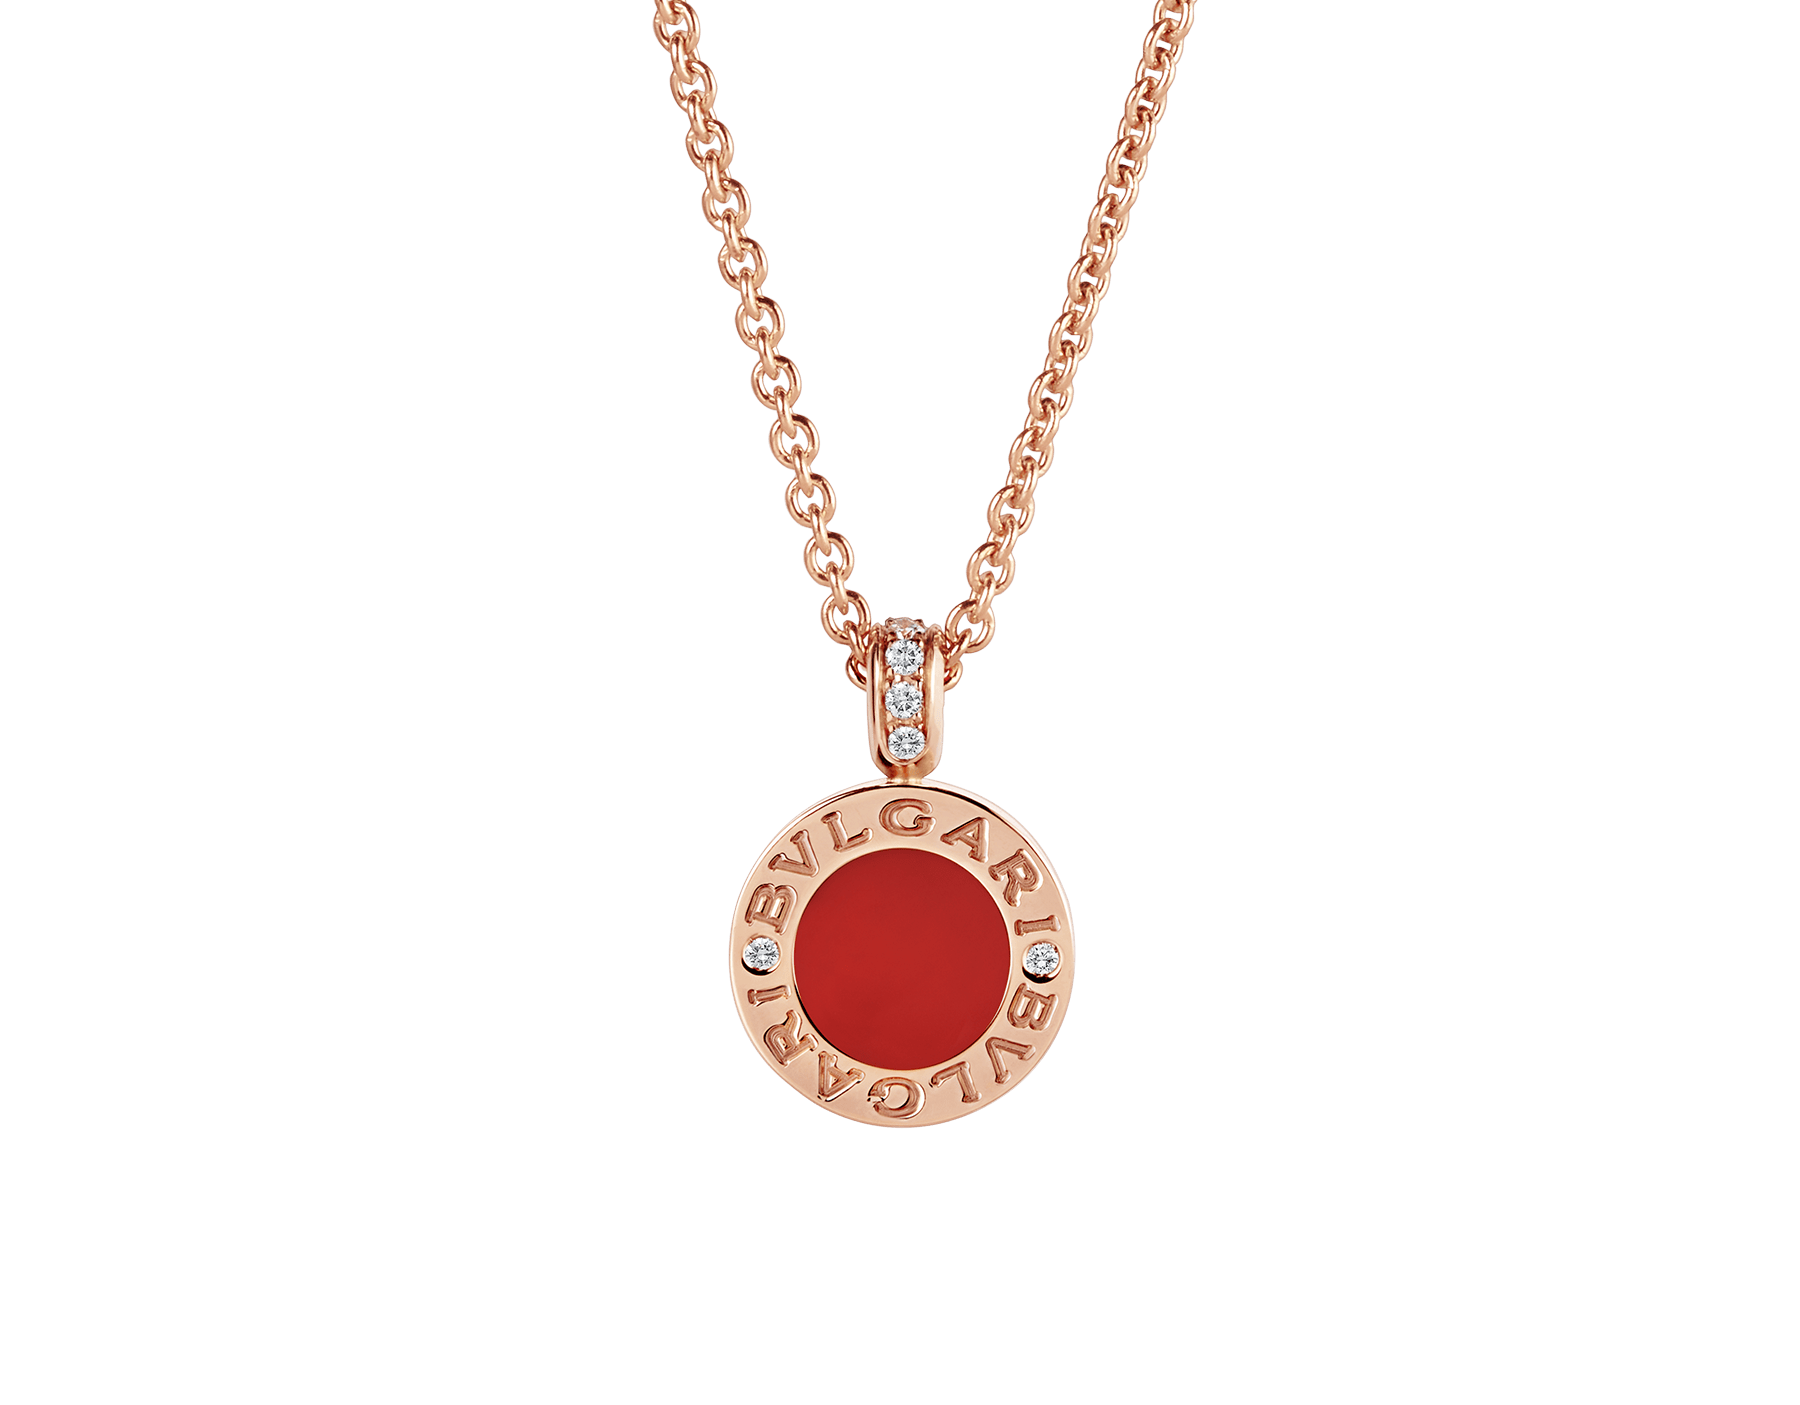 BVLGARI BVLGARI necklace with 18 kt rose gold chain and pendant, set with carnelian and mother-of-pearl discs and with details in pavé diamonds. 352883 image 1